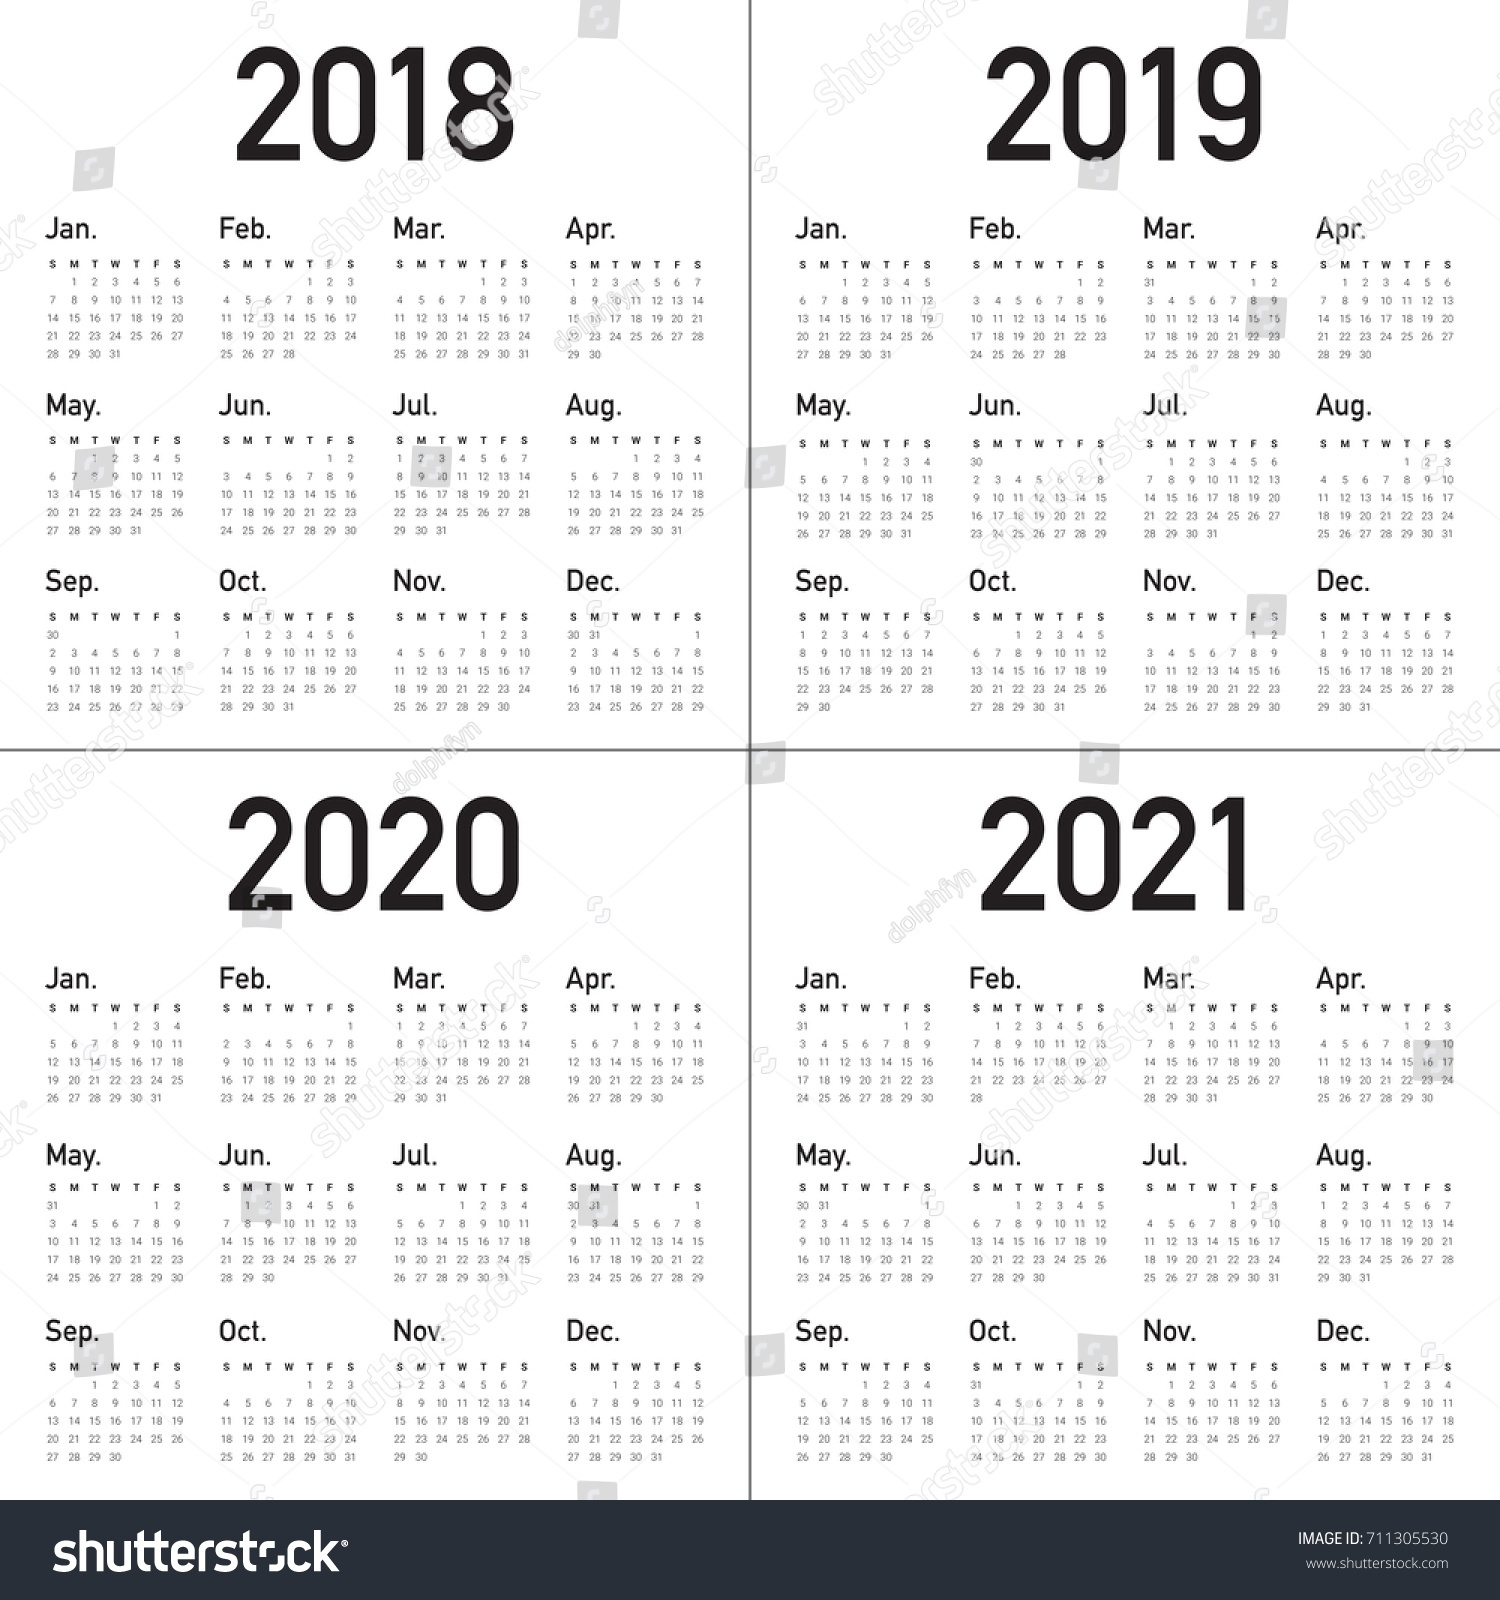 Dandy 3 Year Printable Calendar 2019 To 2021 : Mini Calendar